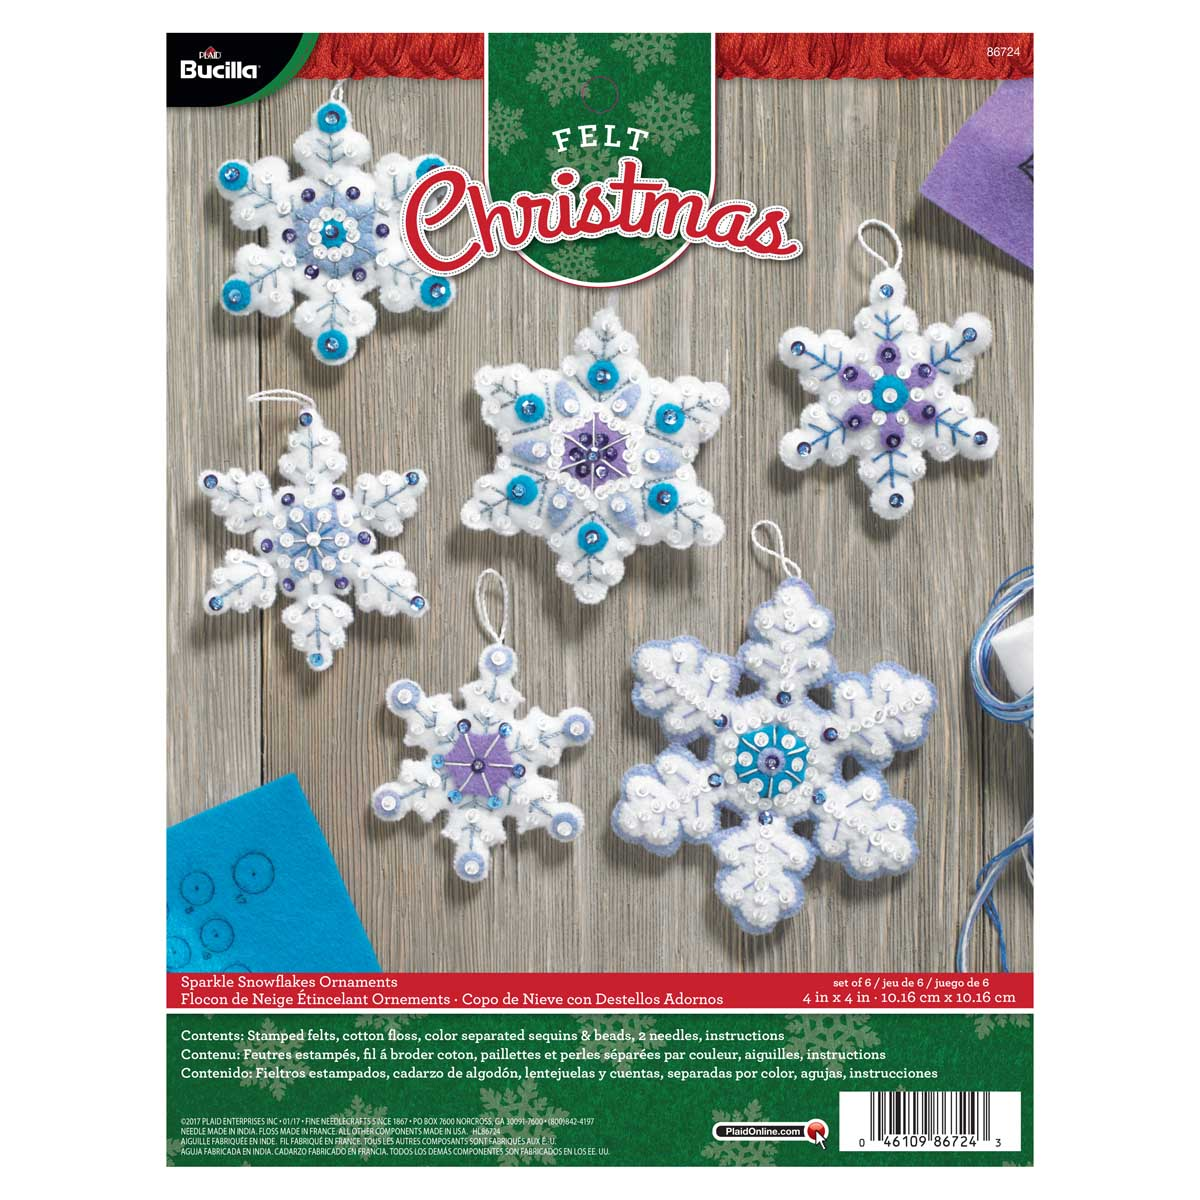 Bucilla ® Seasonal - Felt - Ornament Kits - Sparkle Snowflakes - 86724